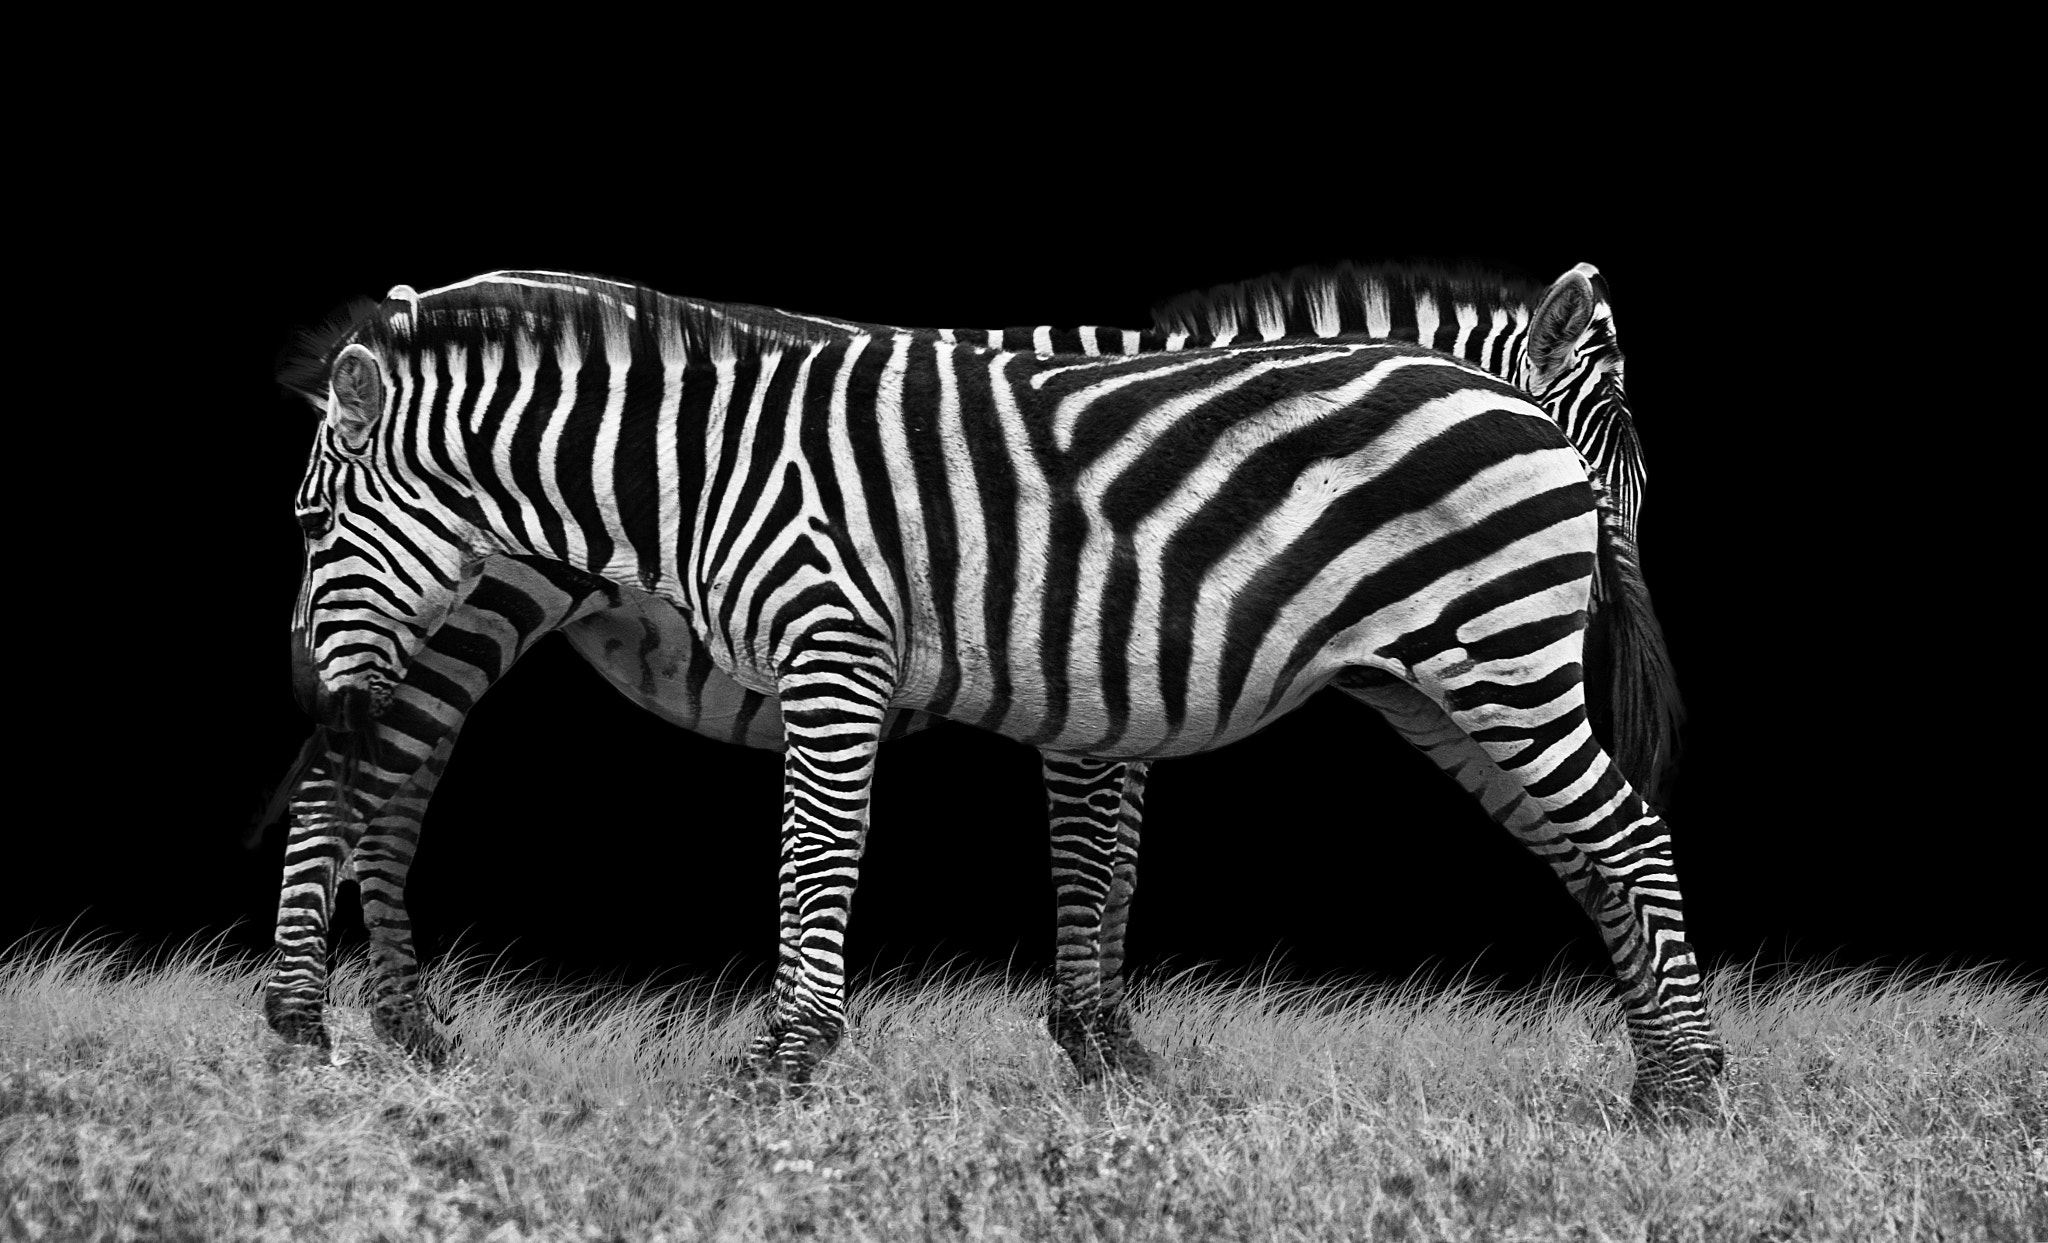 Photograph ~ Zebra crossing ~ by David O Sullivan on 500px